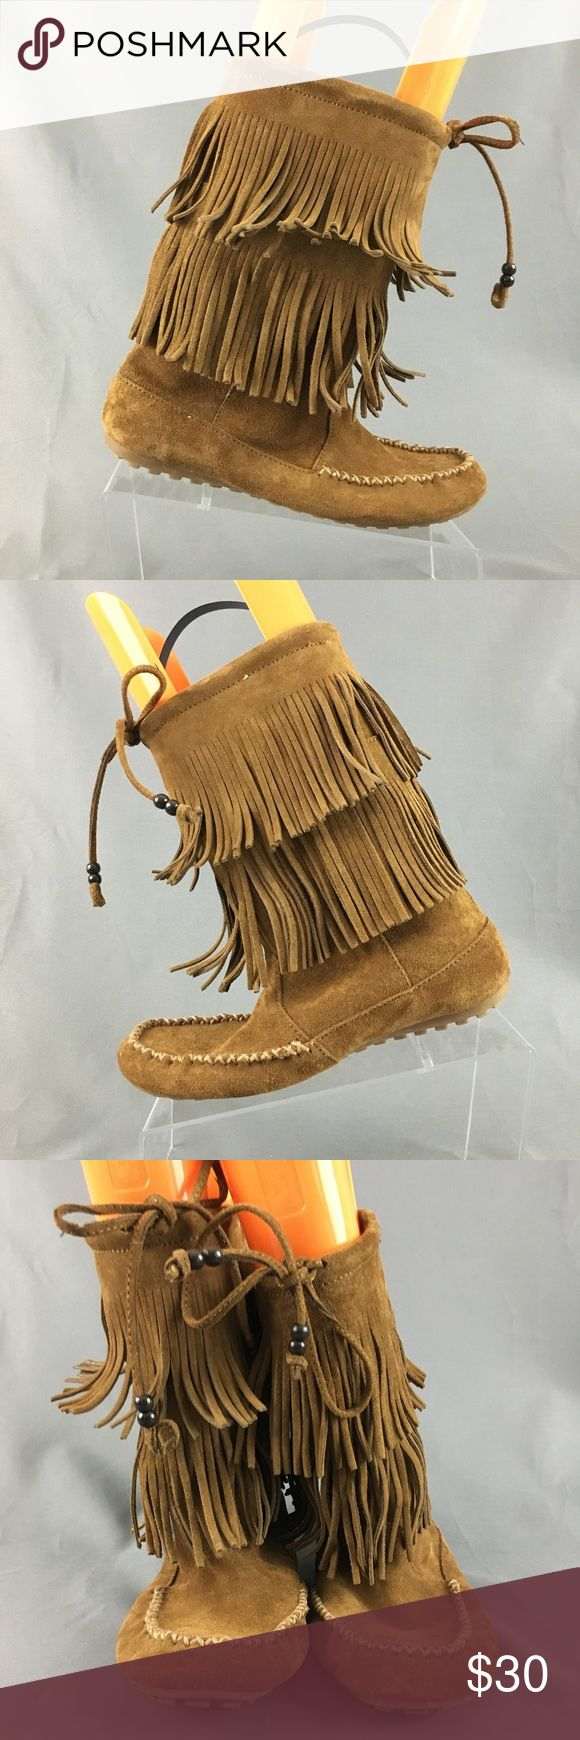 Minnetonka suede leather knee high tall lace up moccasin fringe boots - Minnetonka Women S Fringe Leather Moccasin Boots